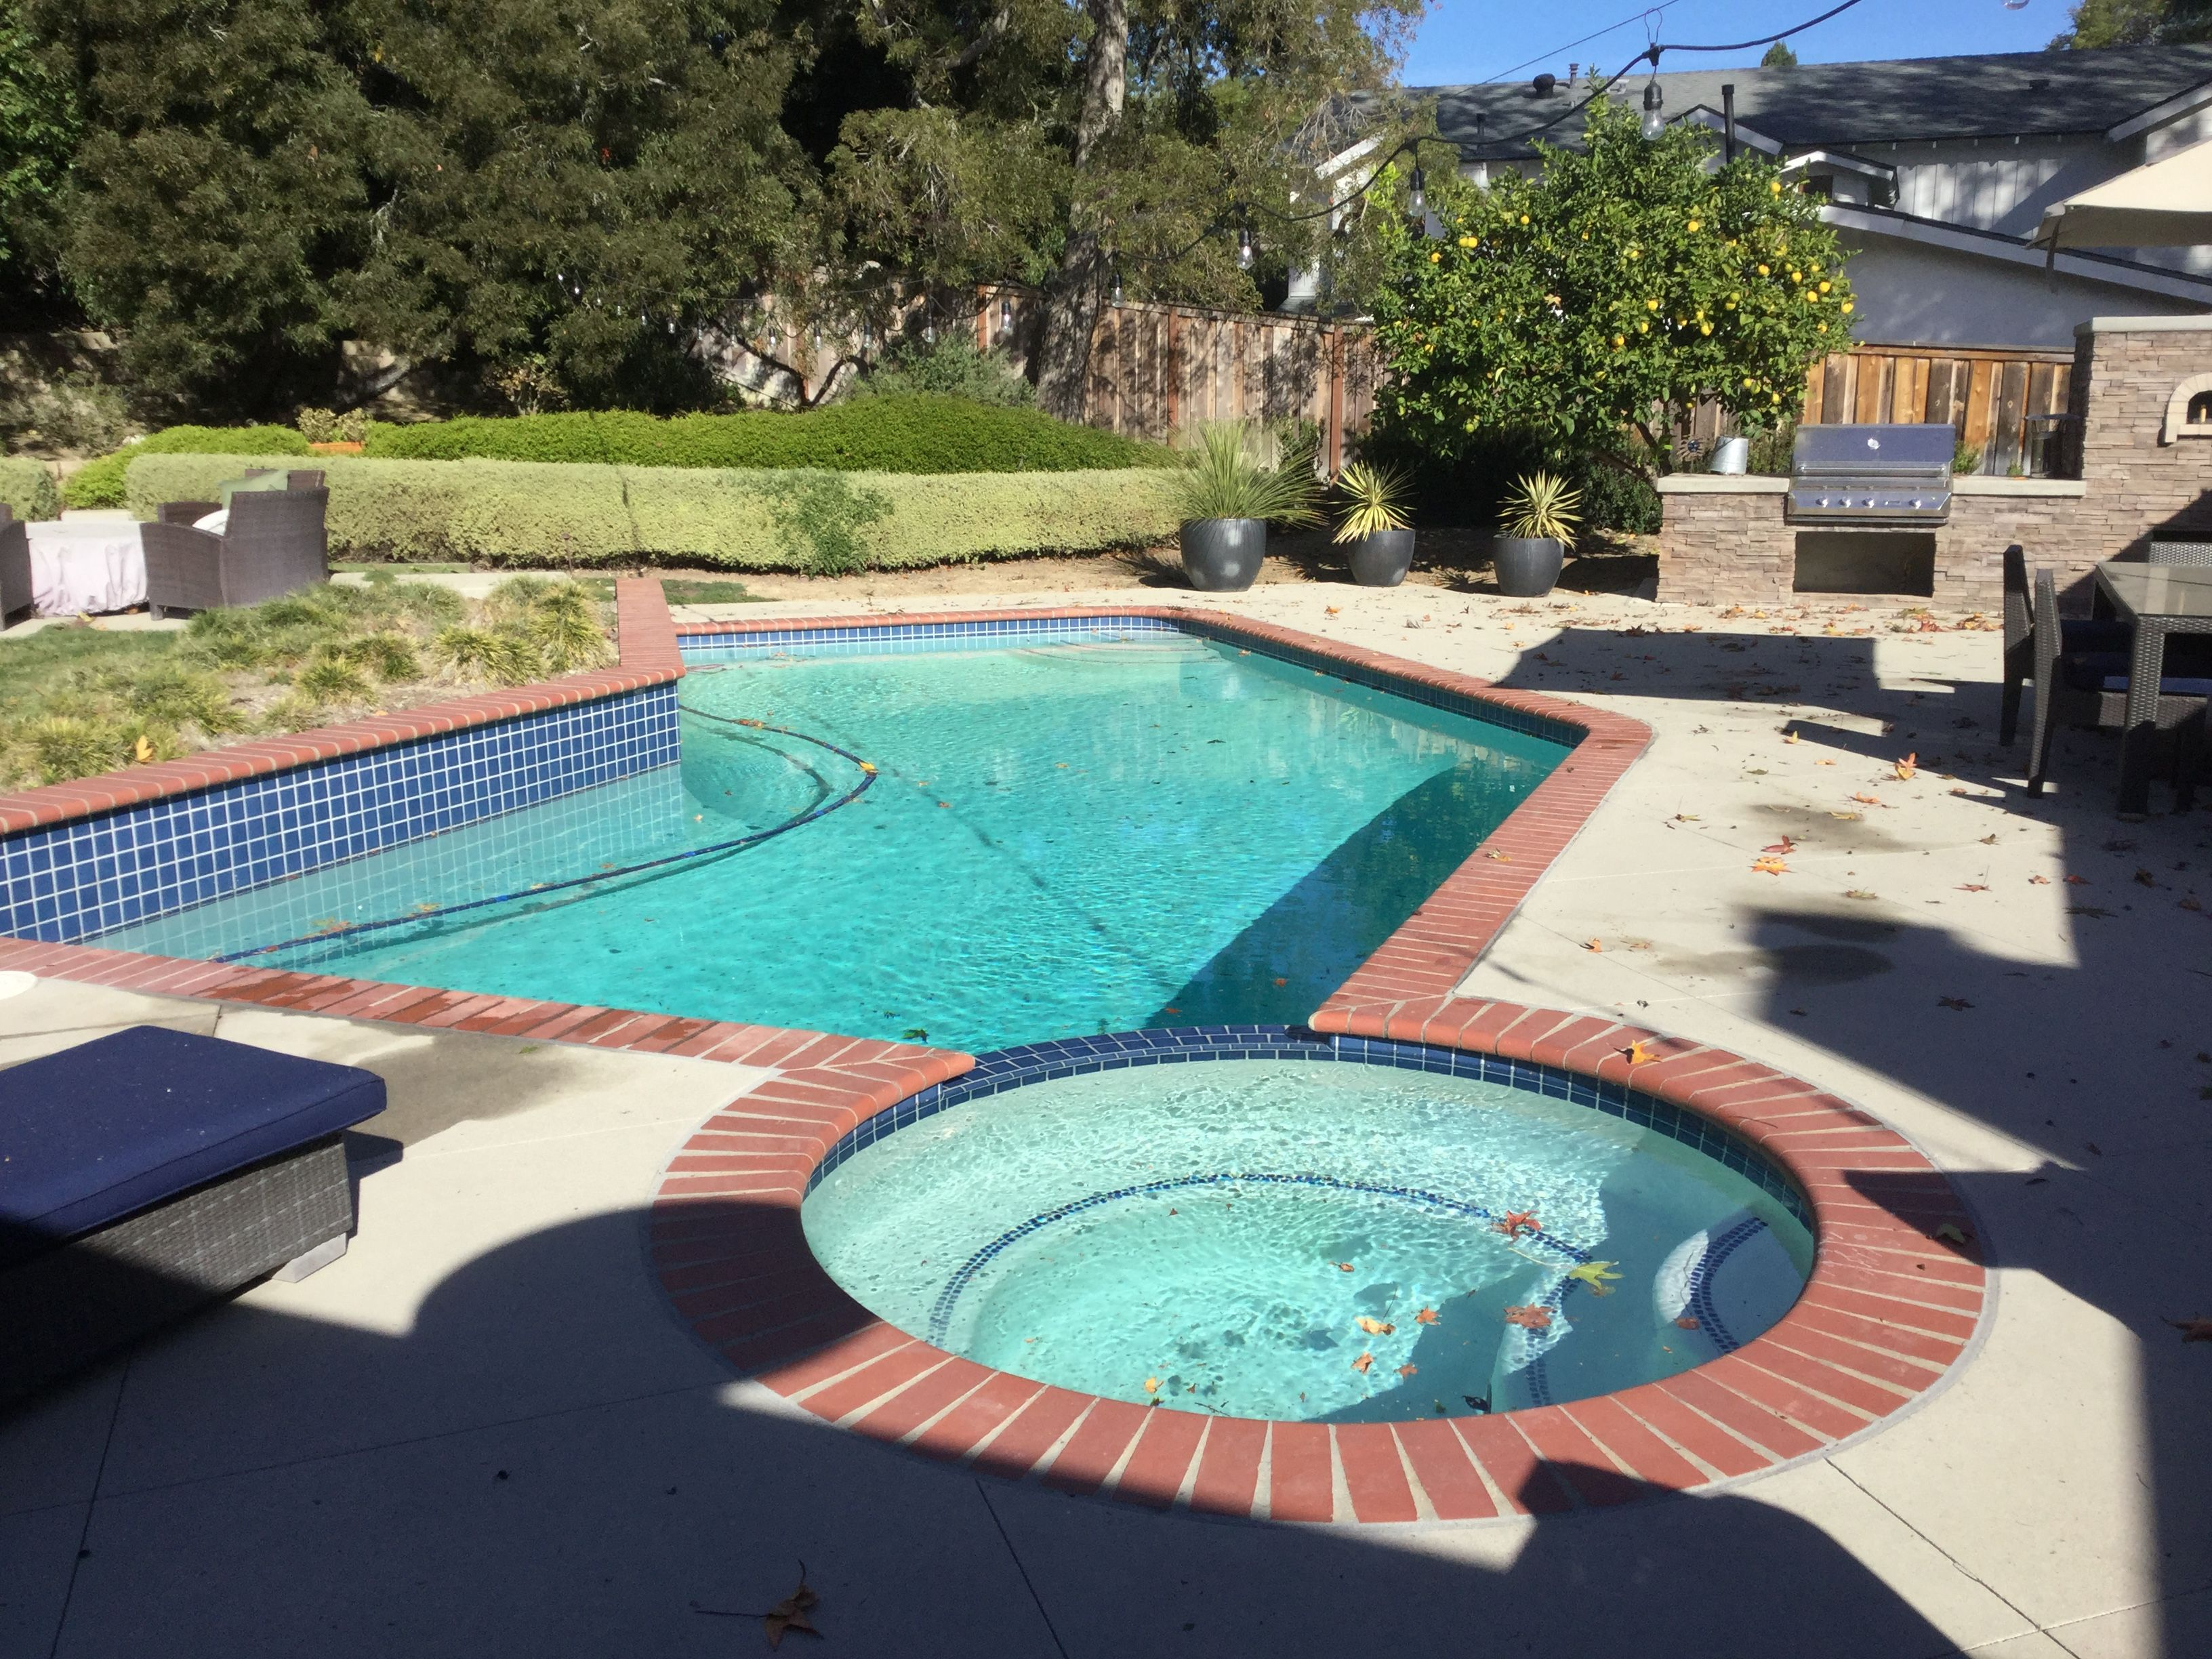 When It Comes To Owning A Swimming Pool In Southern California Dealing With High Levels Of Calcium Hardness Ch In The Pool High Calcium Swimming Pool Water